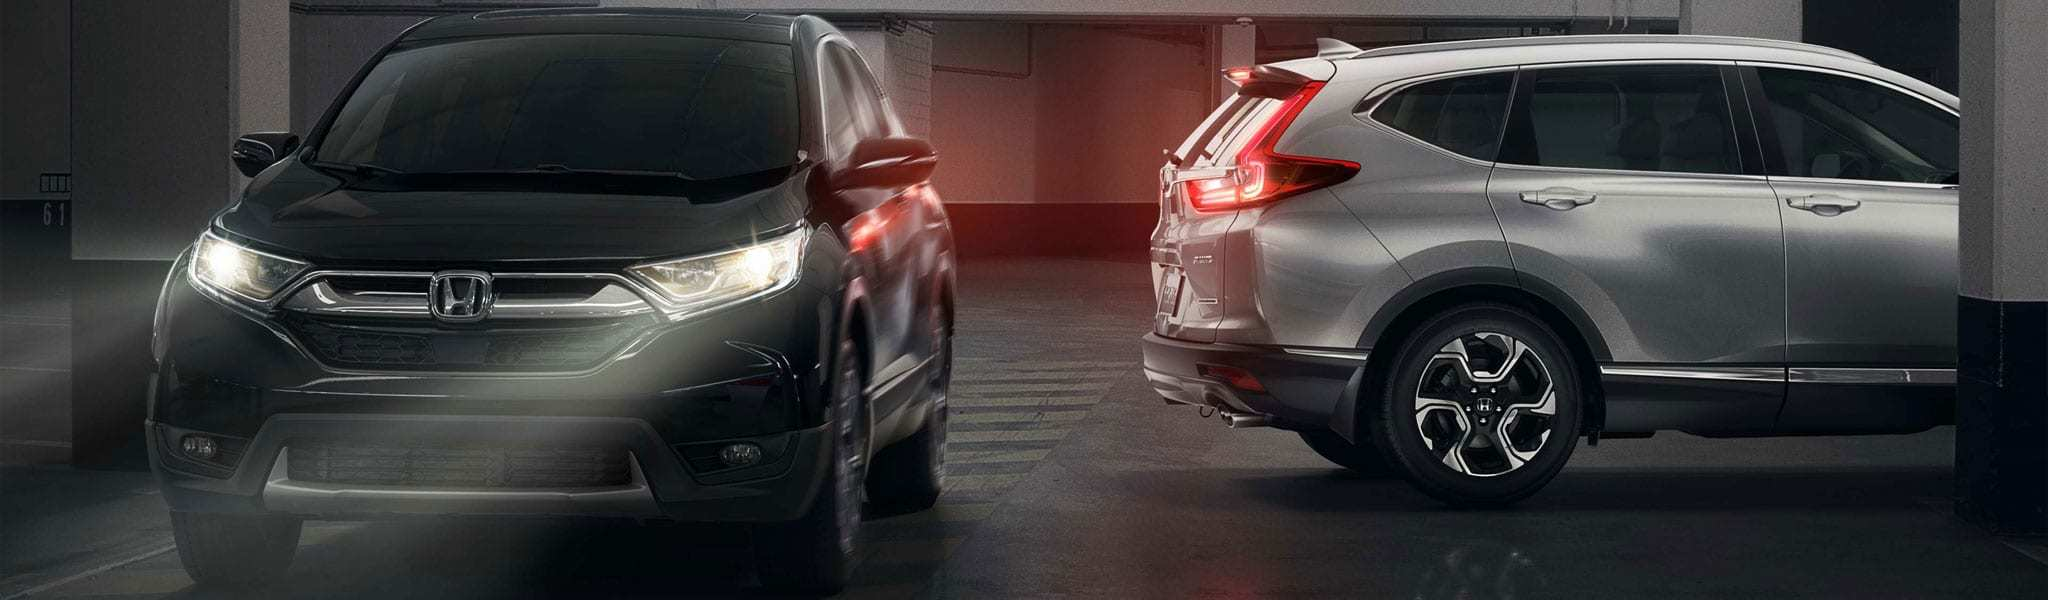 Forward collision warning and other safety systems on the Honda CR-V